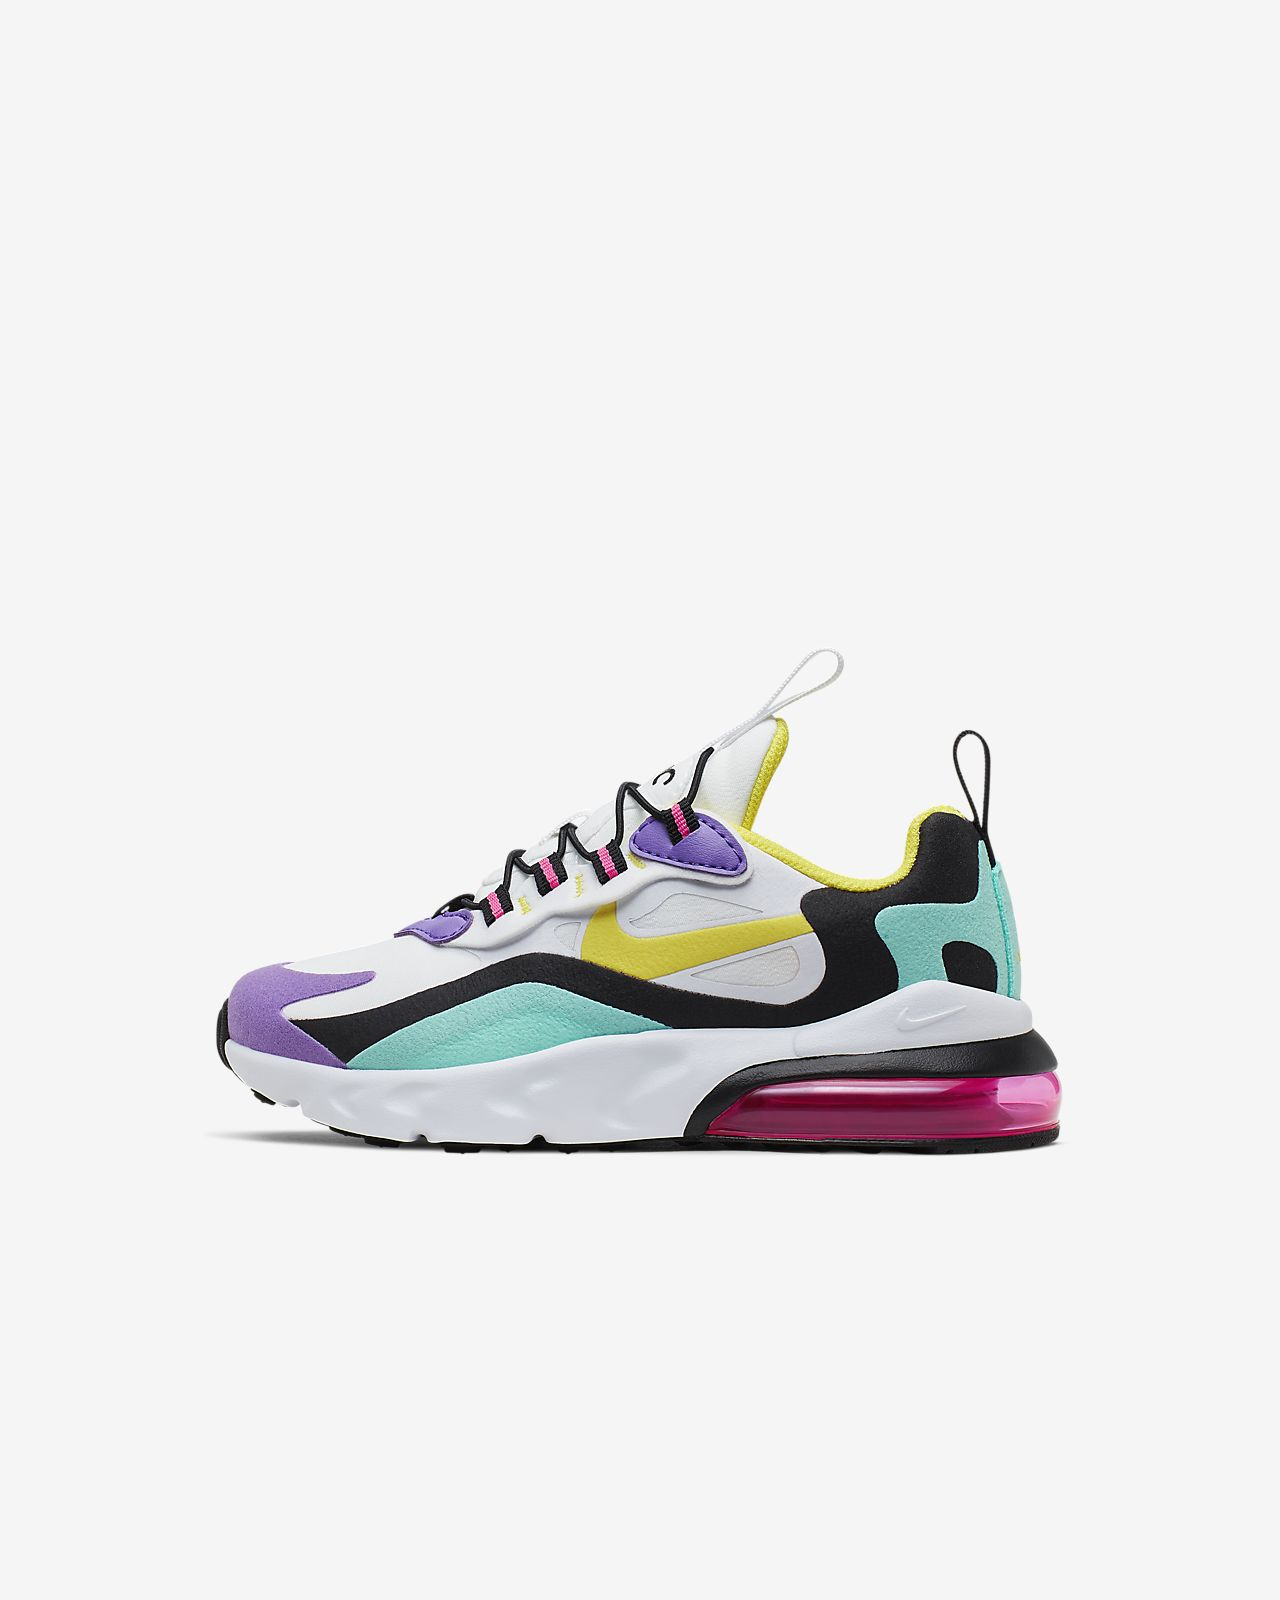 Sko Nike Air Max 270 RT för barn